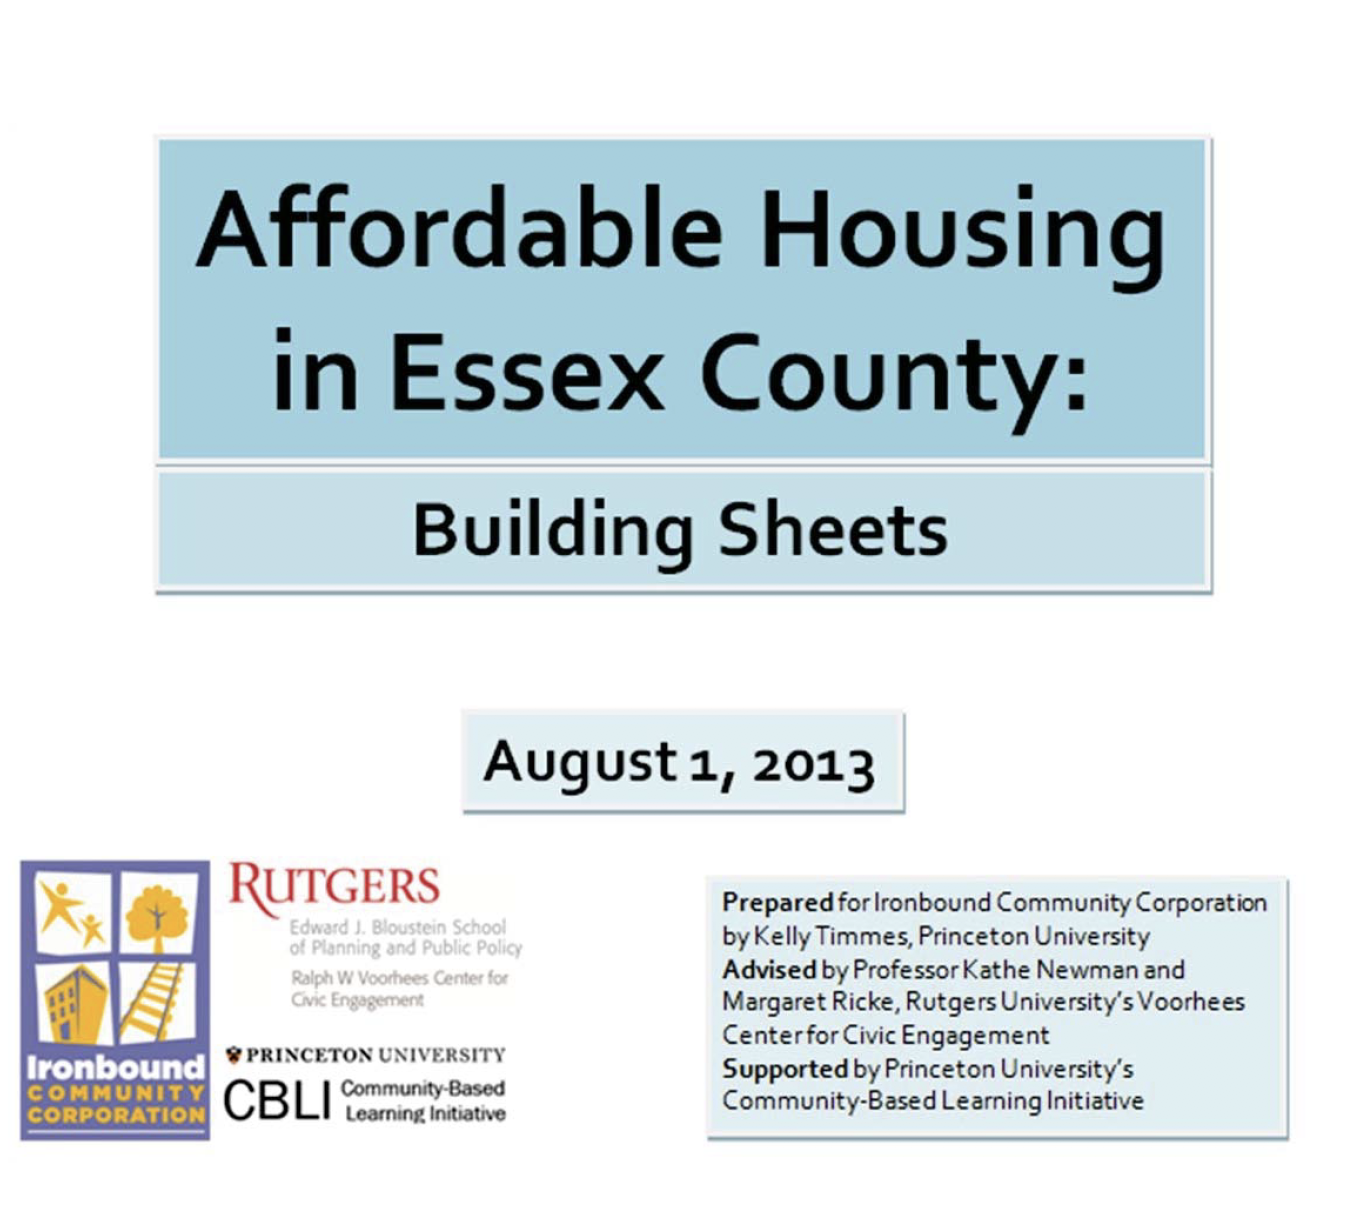 affordable housing New Jersey Voorhees civic engagement Rutgers